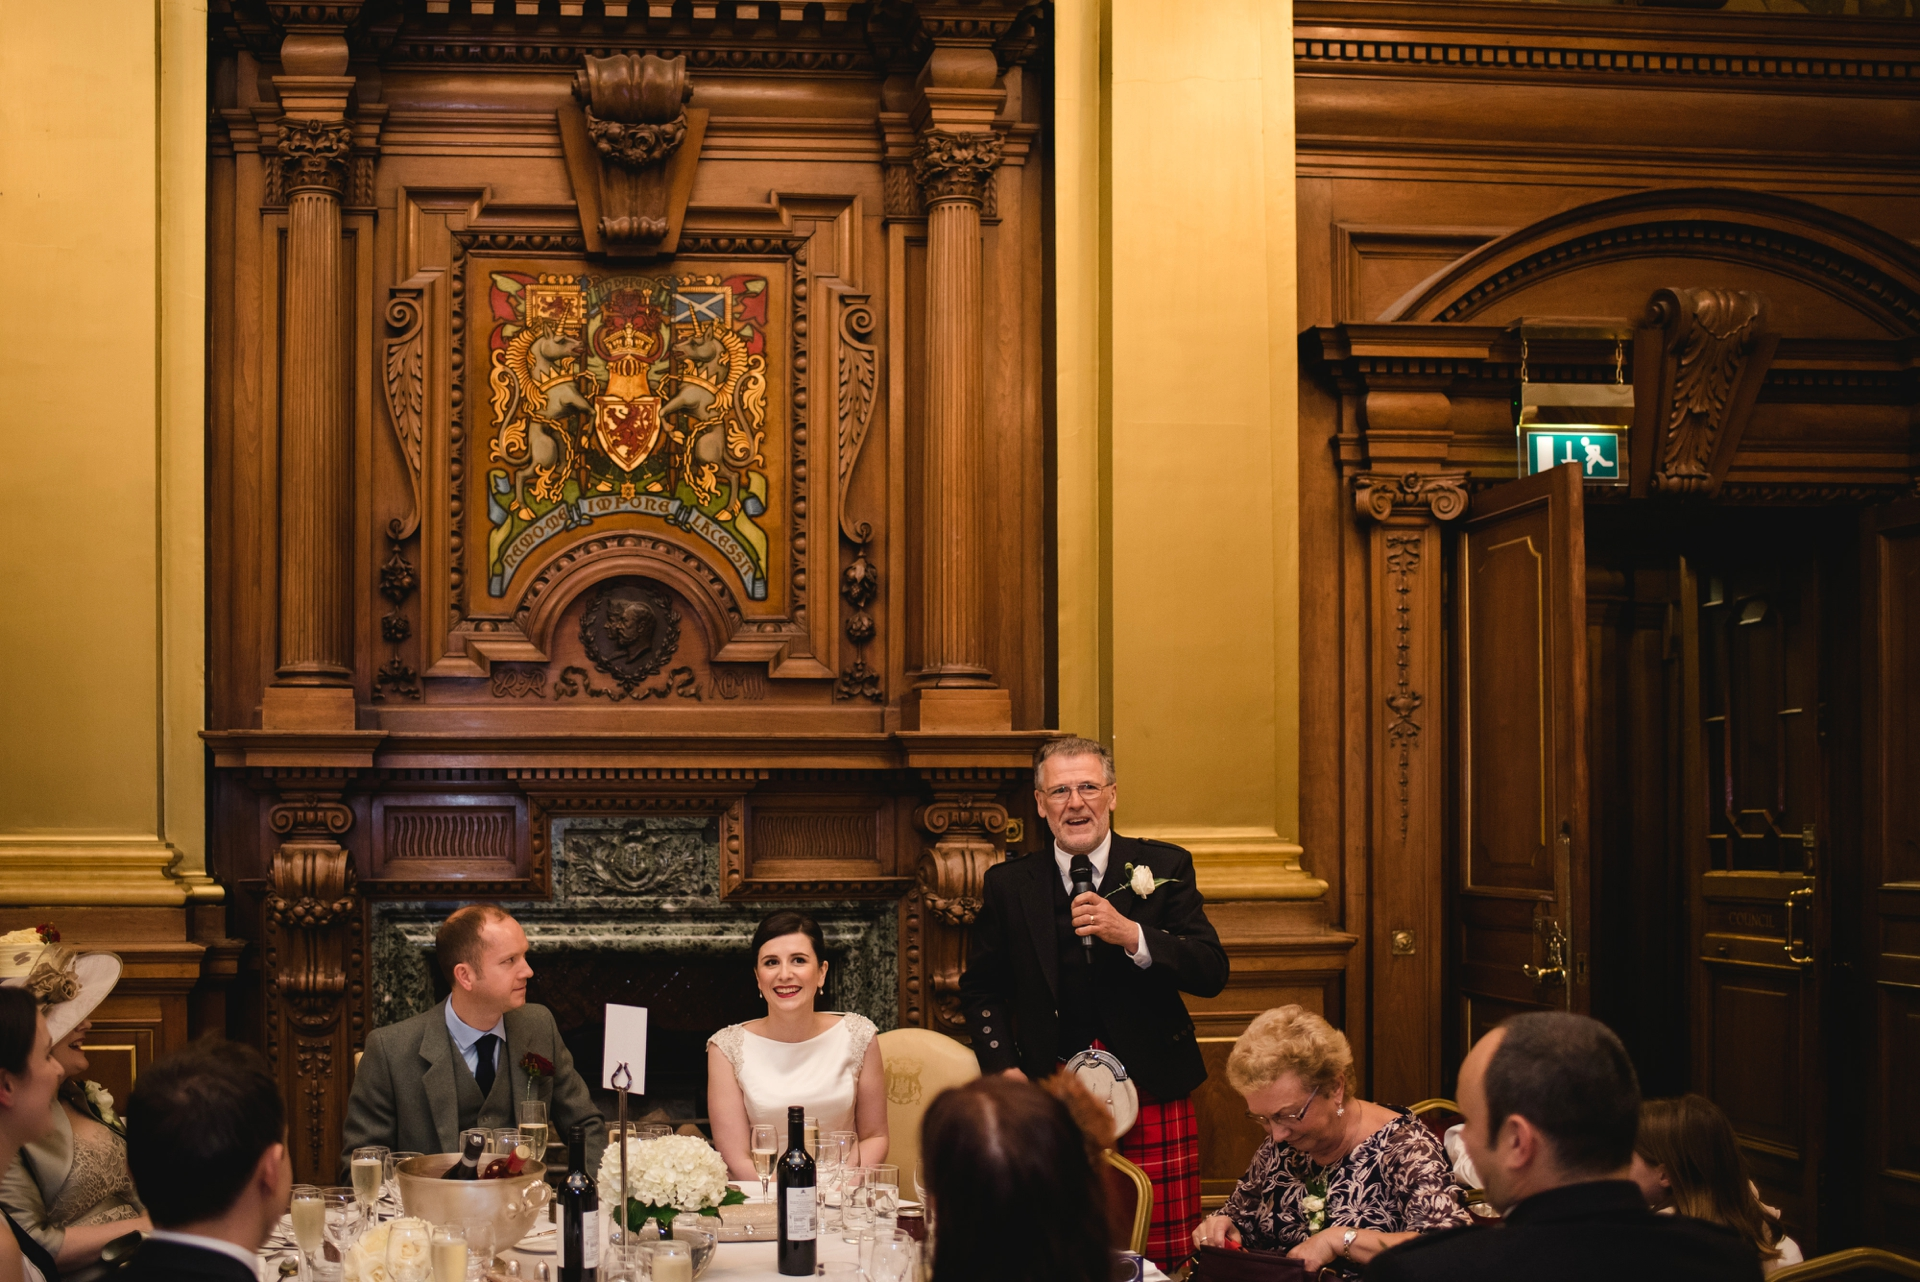 Edinburgh City Chambers Wedding_0032.jpg